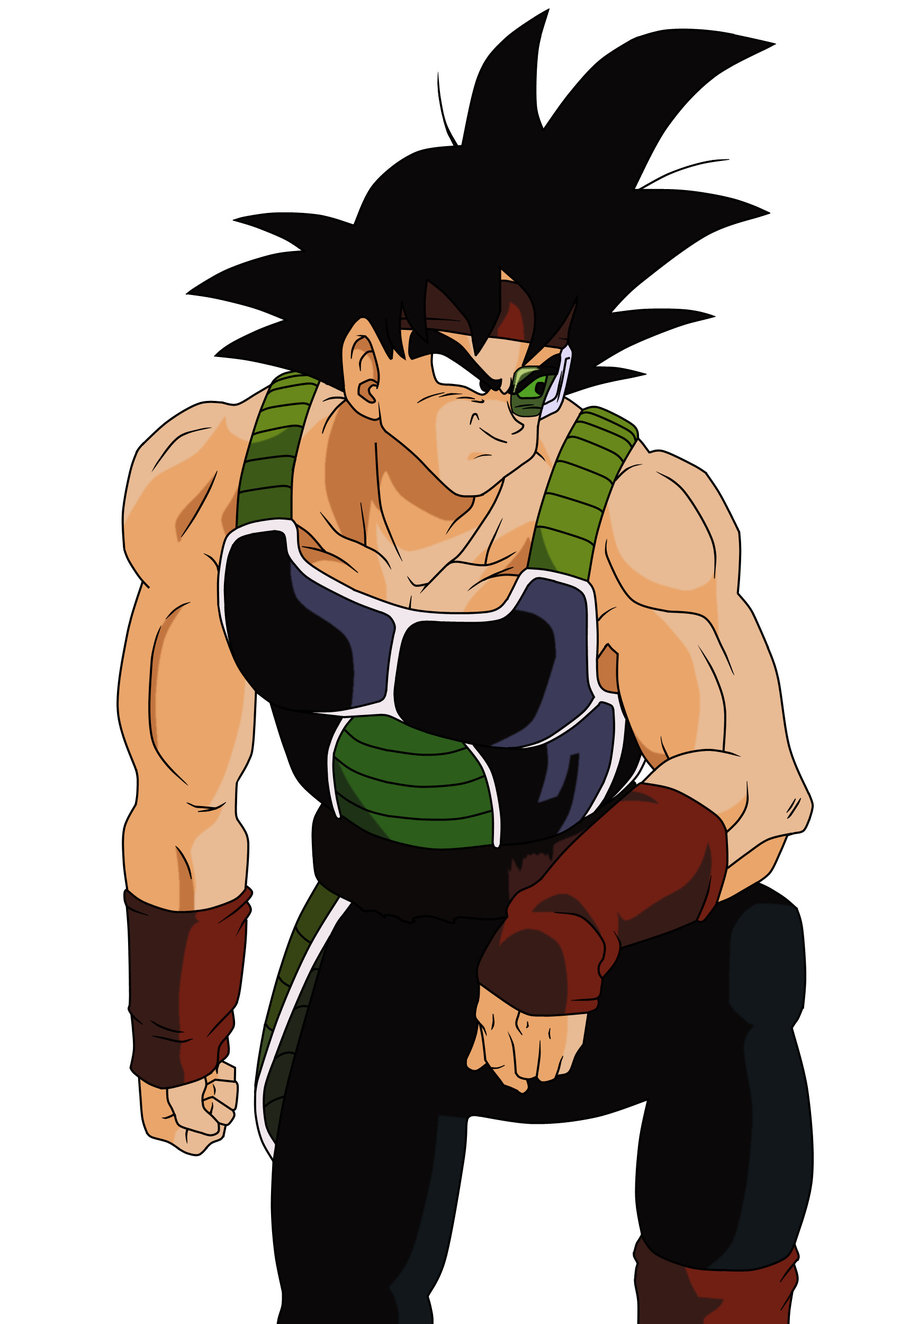 List of Bardock Moves | Dragon Ball Moves Wiki | FANDOM